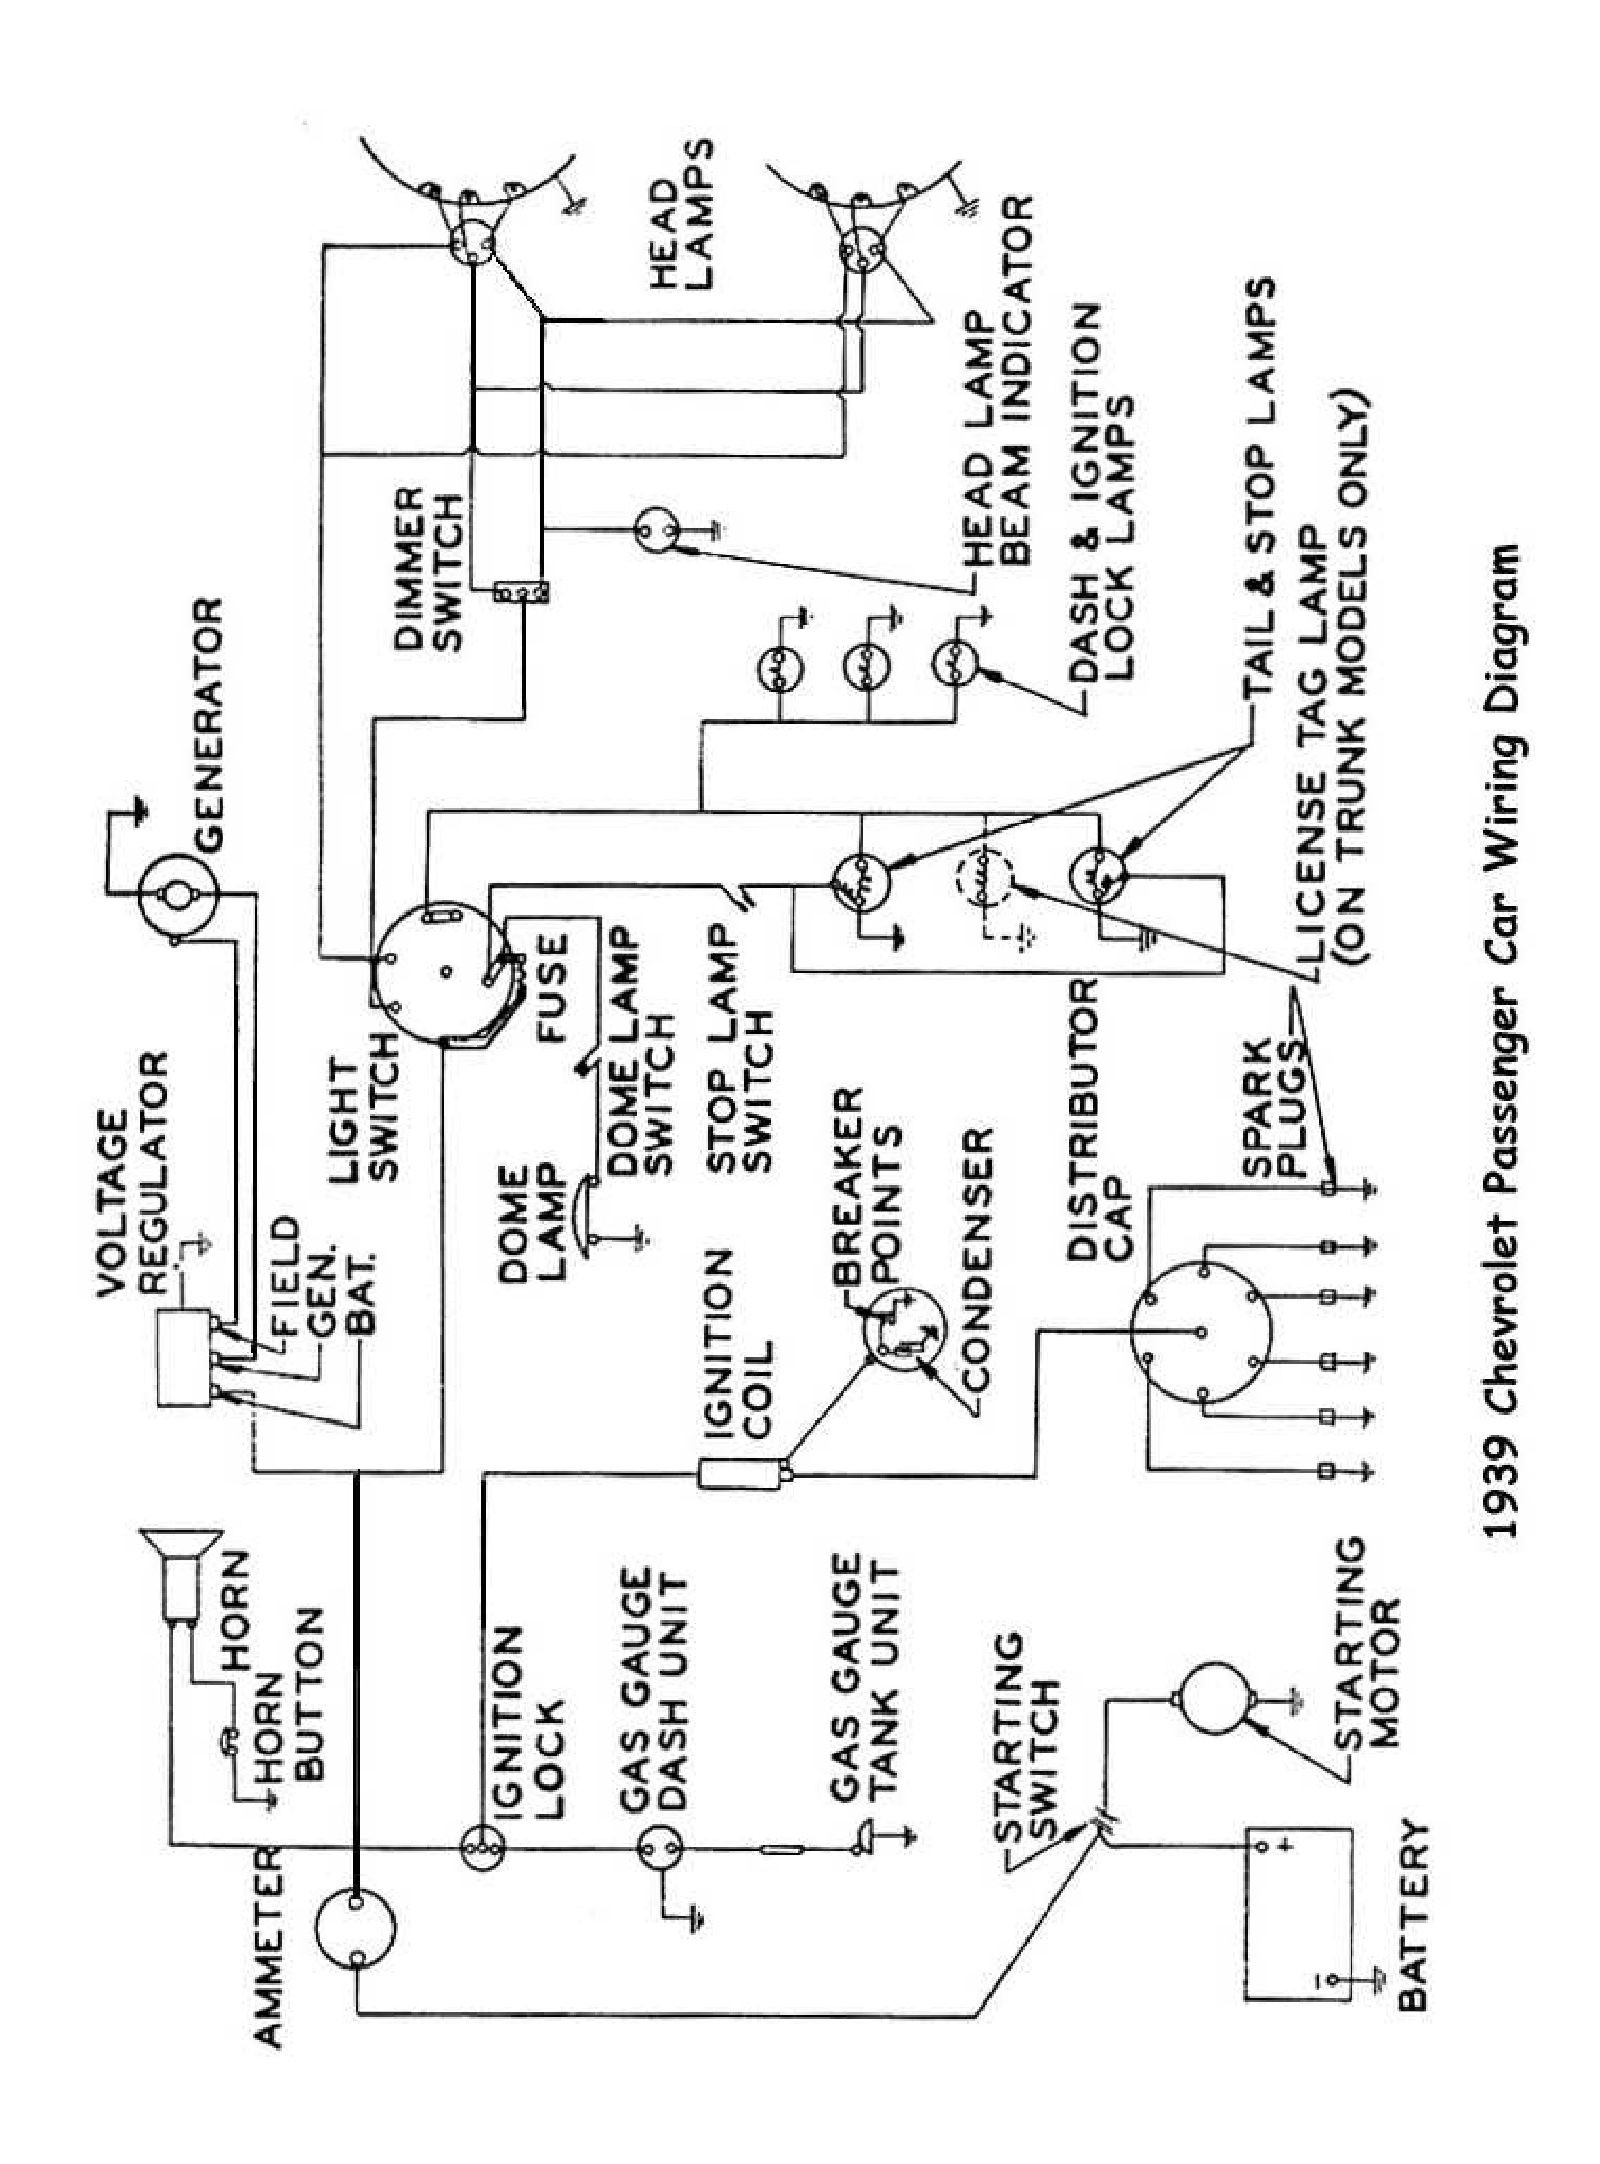 Basic Engine Wiring Diagram Stator Wiring Diagram Blurts